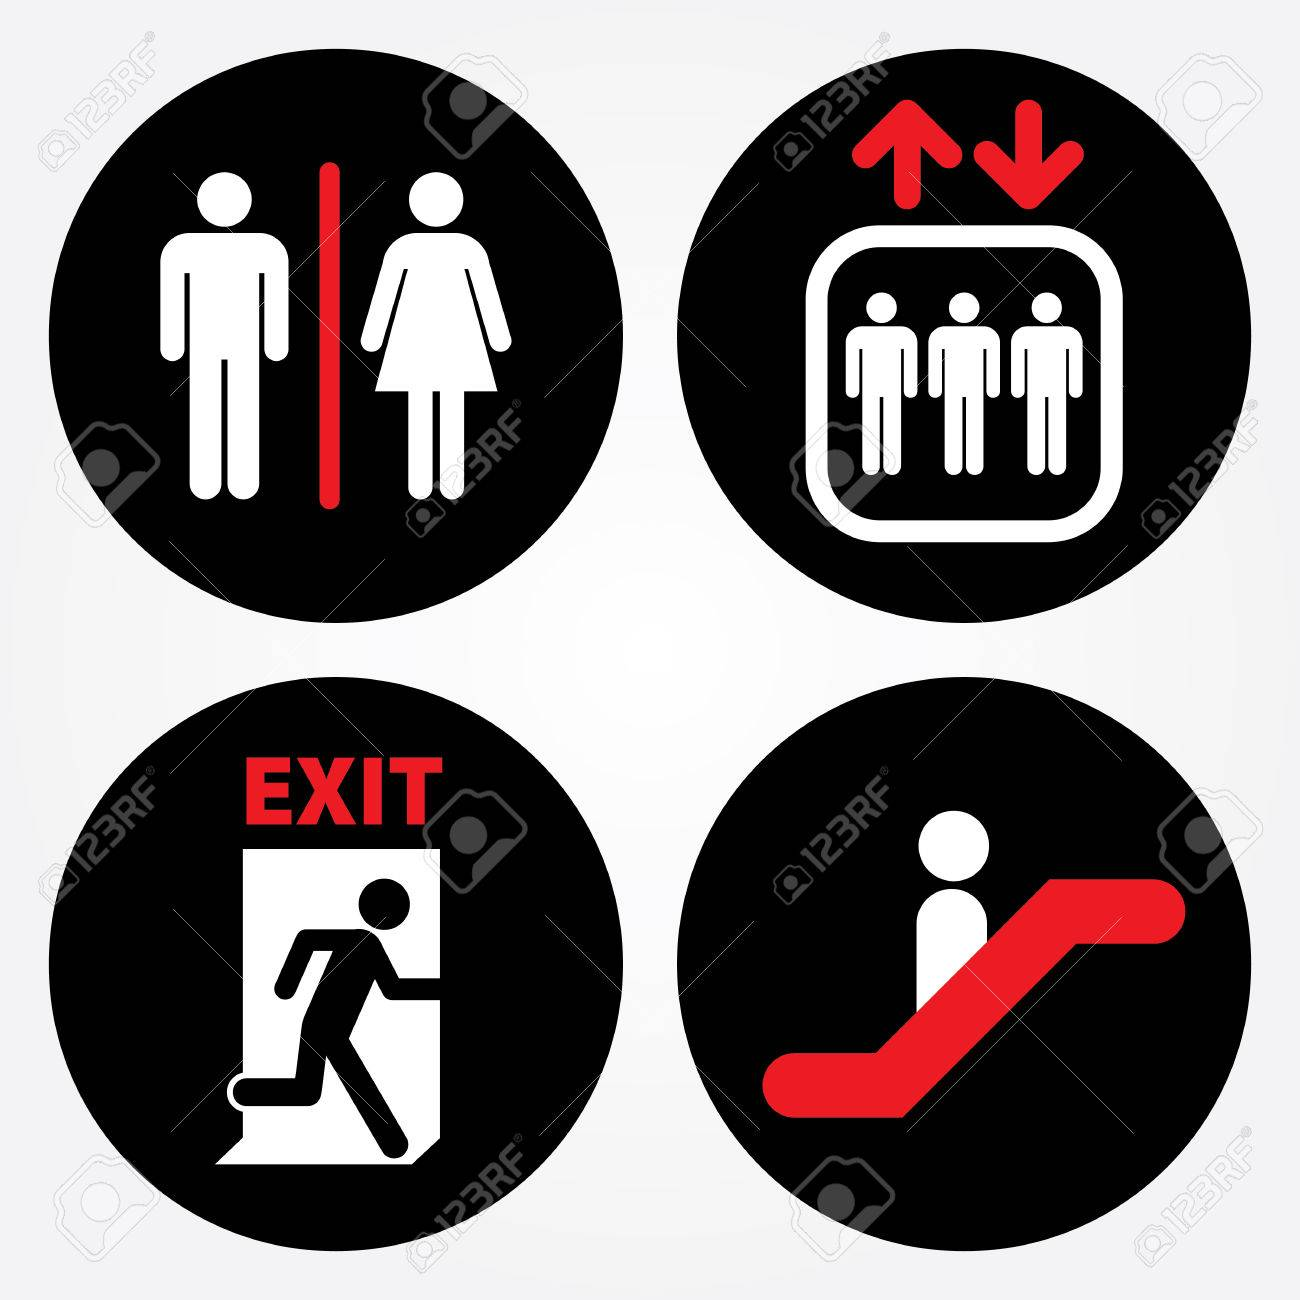 toilet sign escalator sign elevator sign emergency exit door